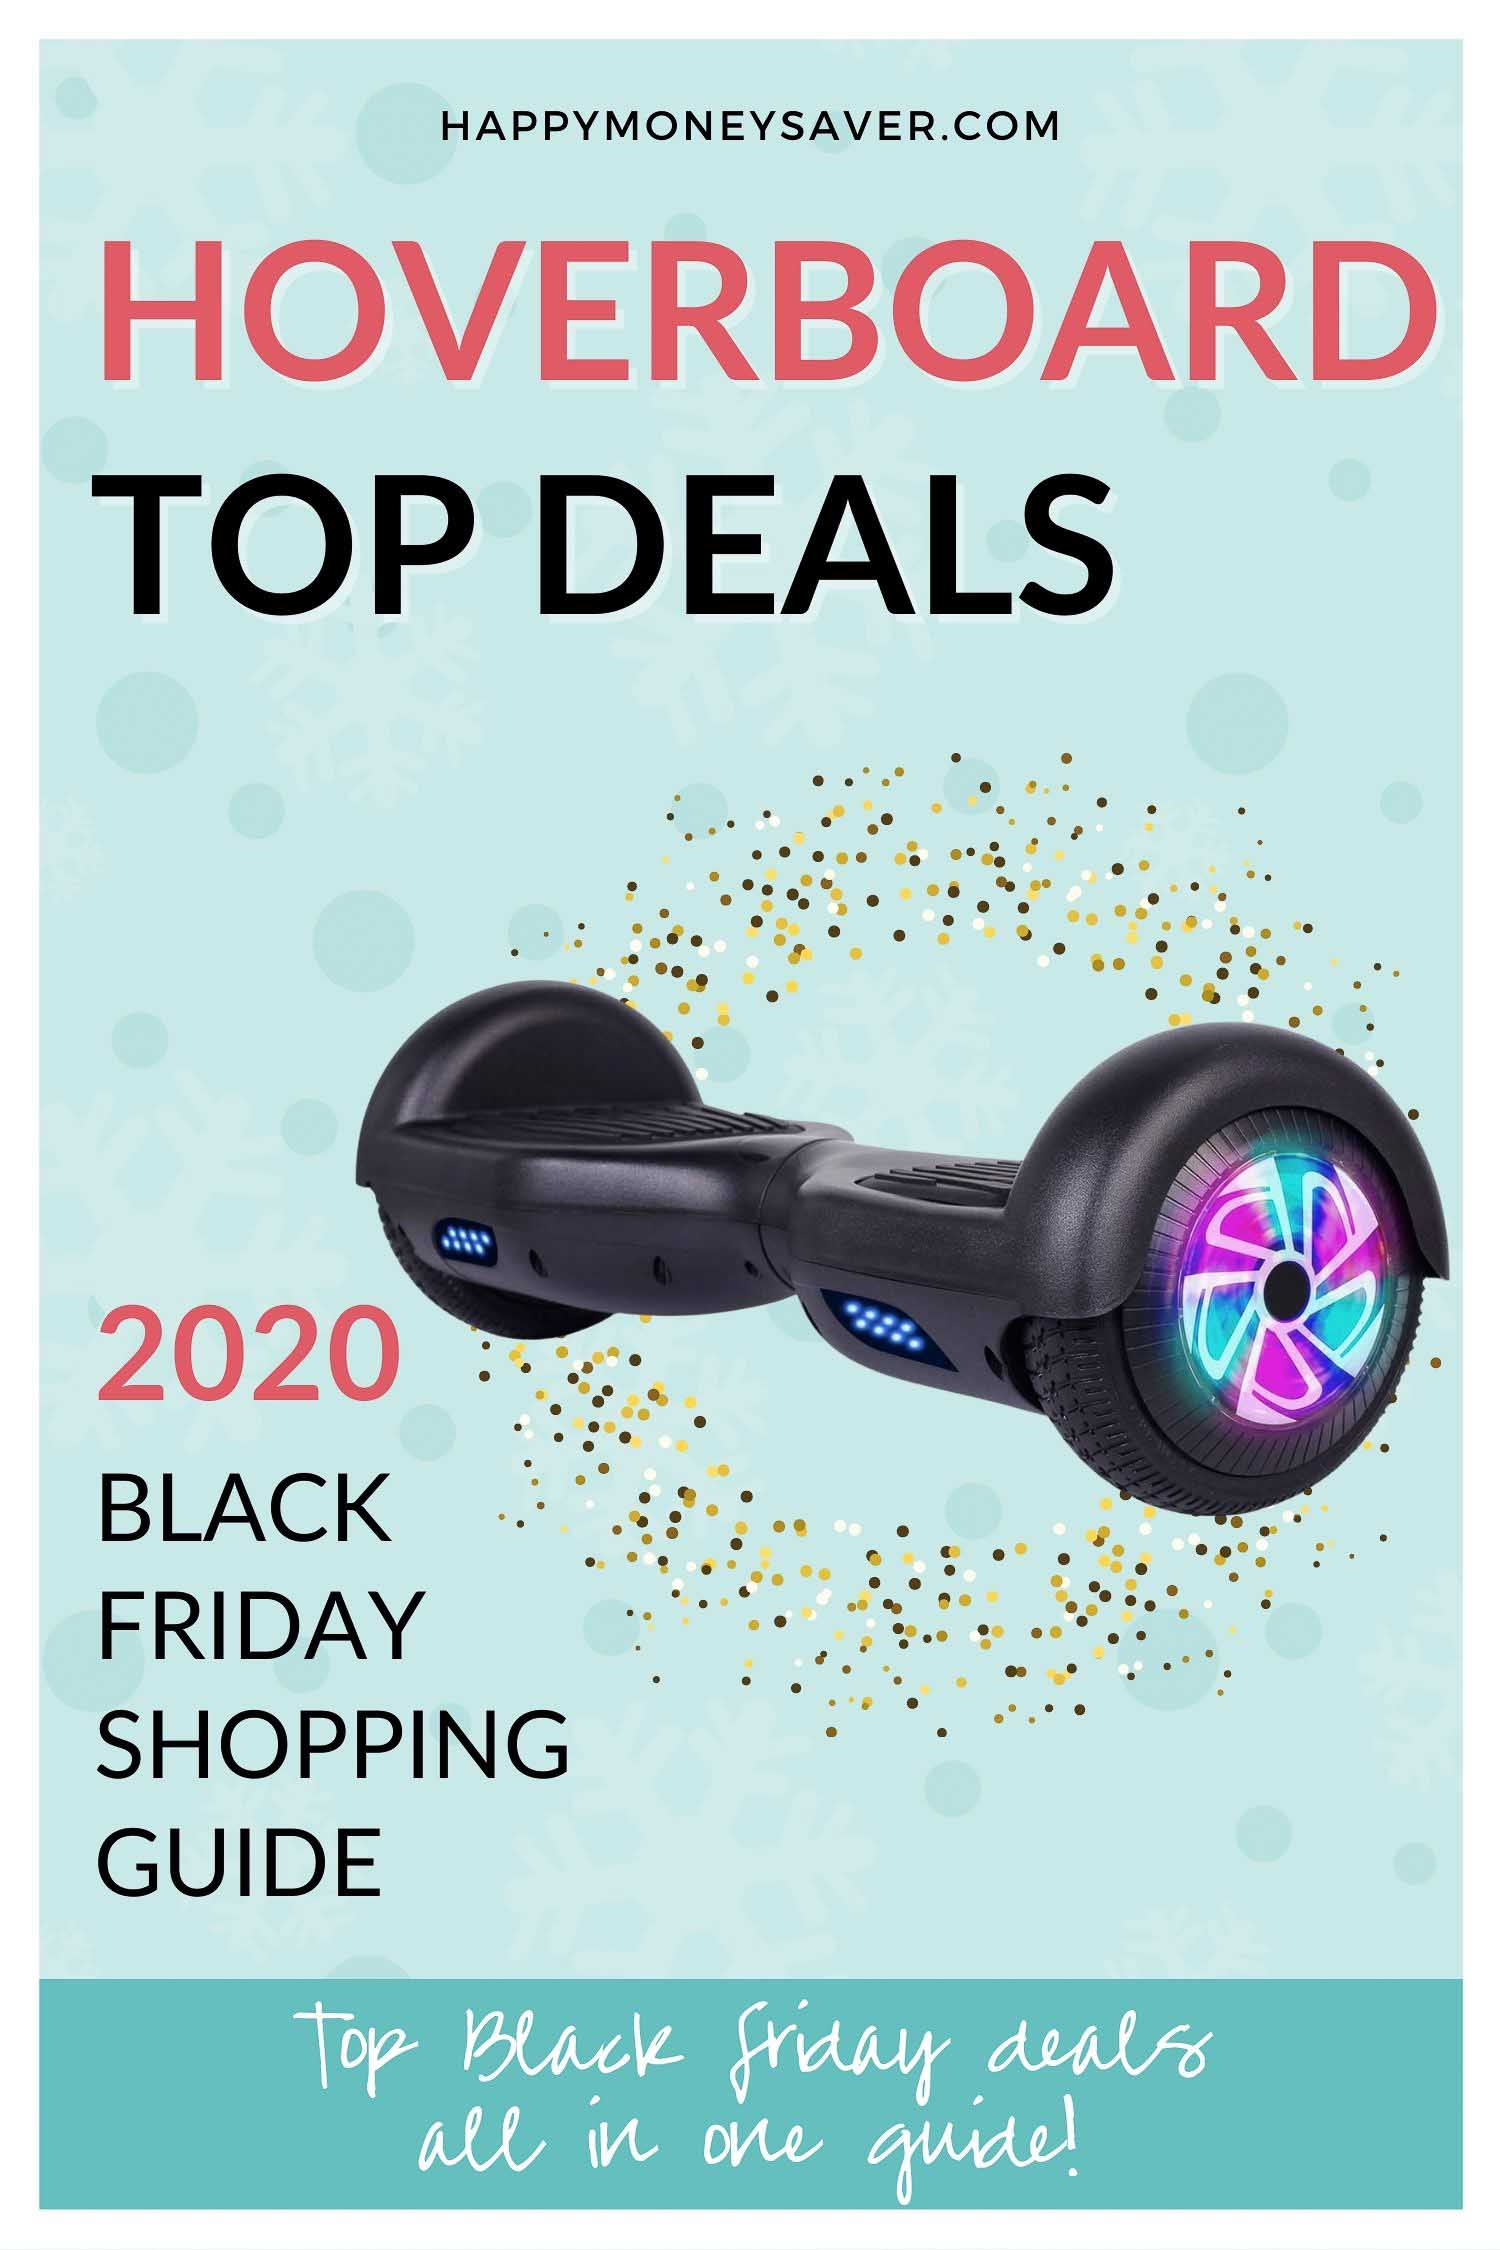 Roundup of all the Hoverboard Black Friday Sale Deals for 2020